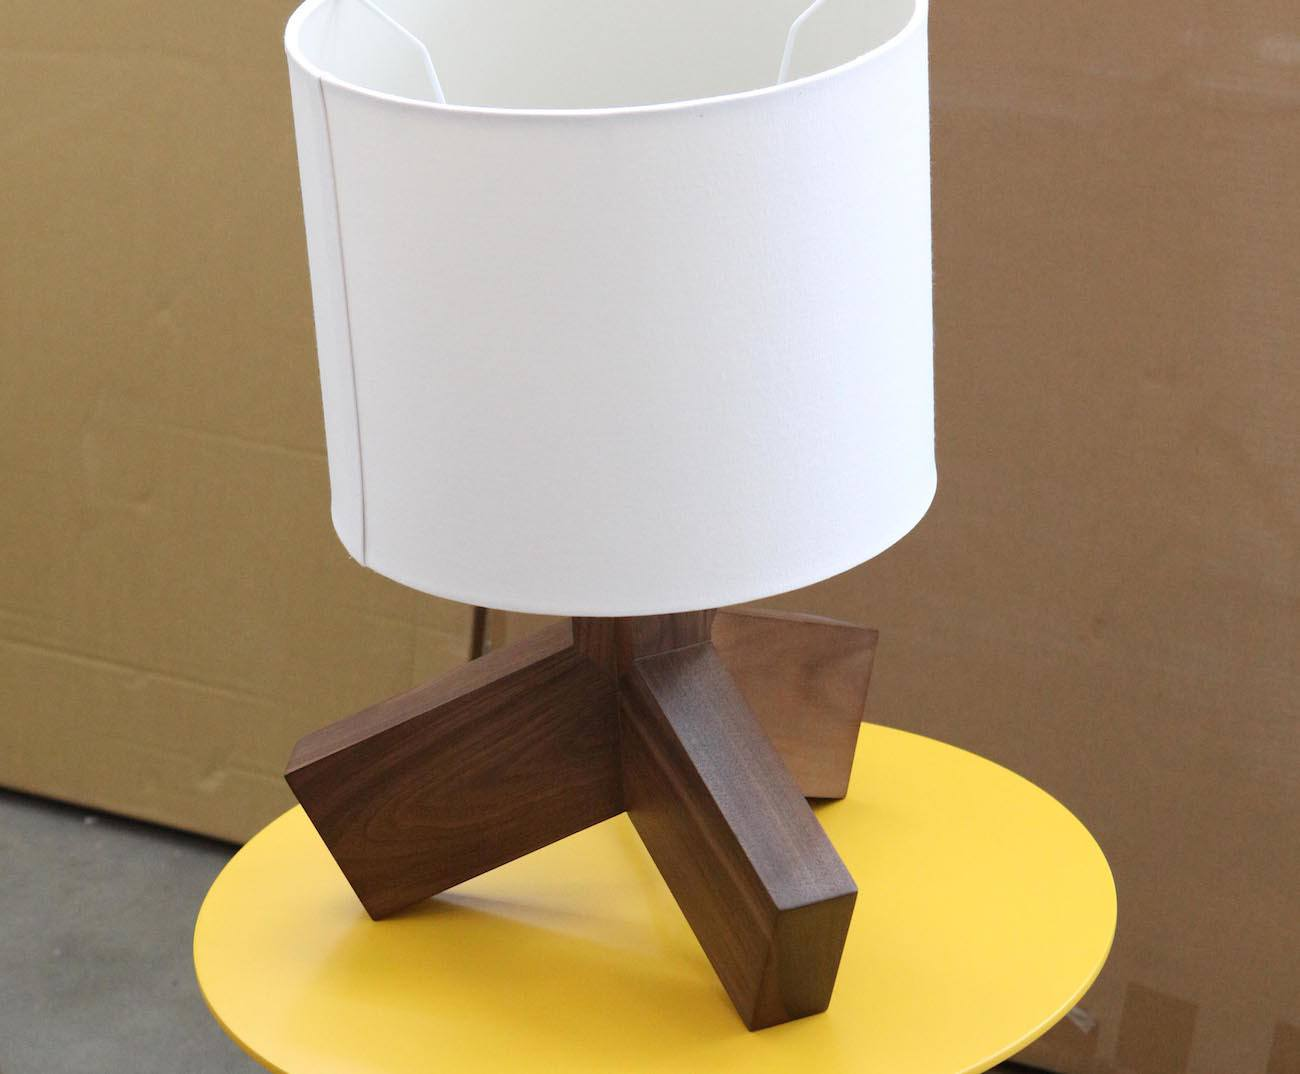 Rook Lamp by Blu Dot